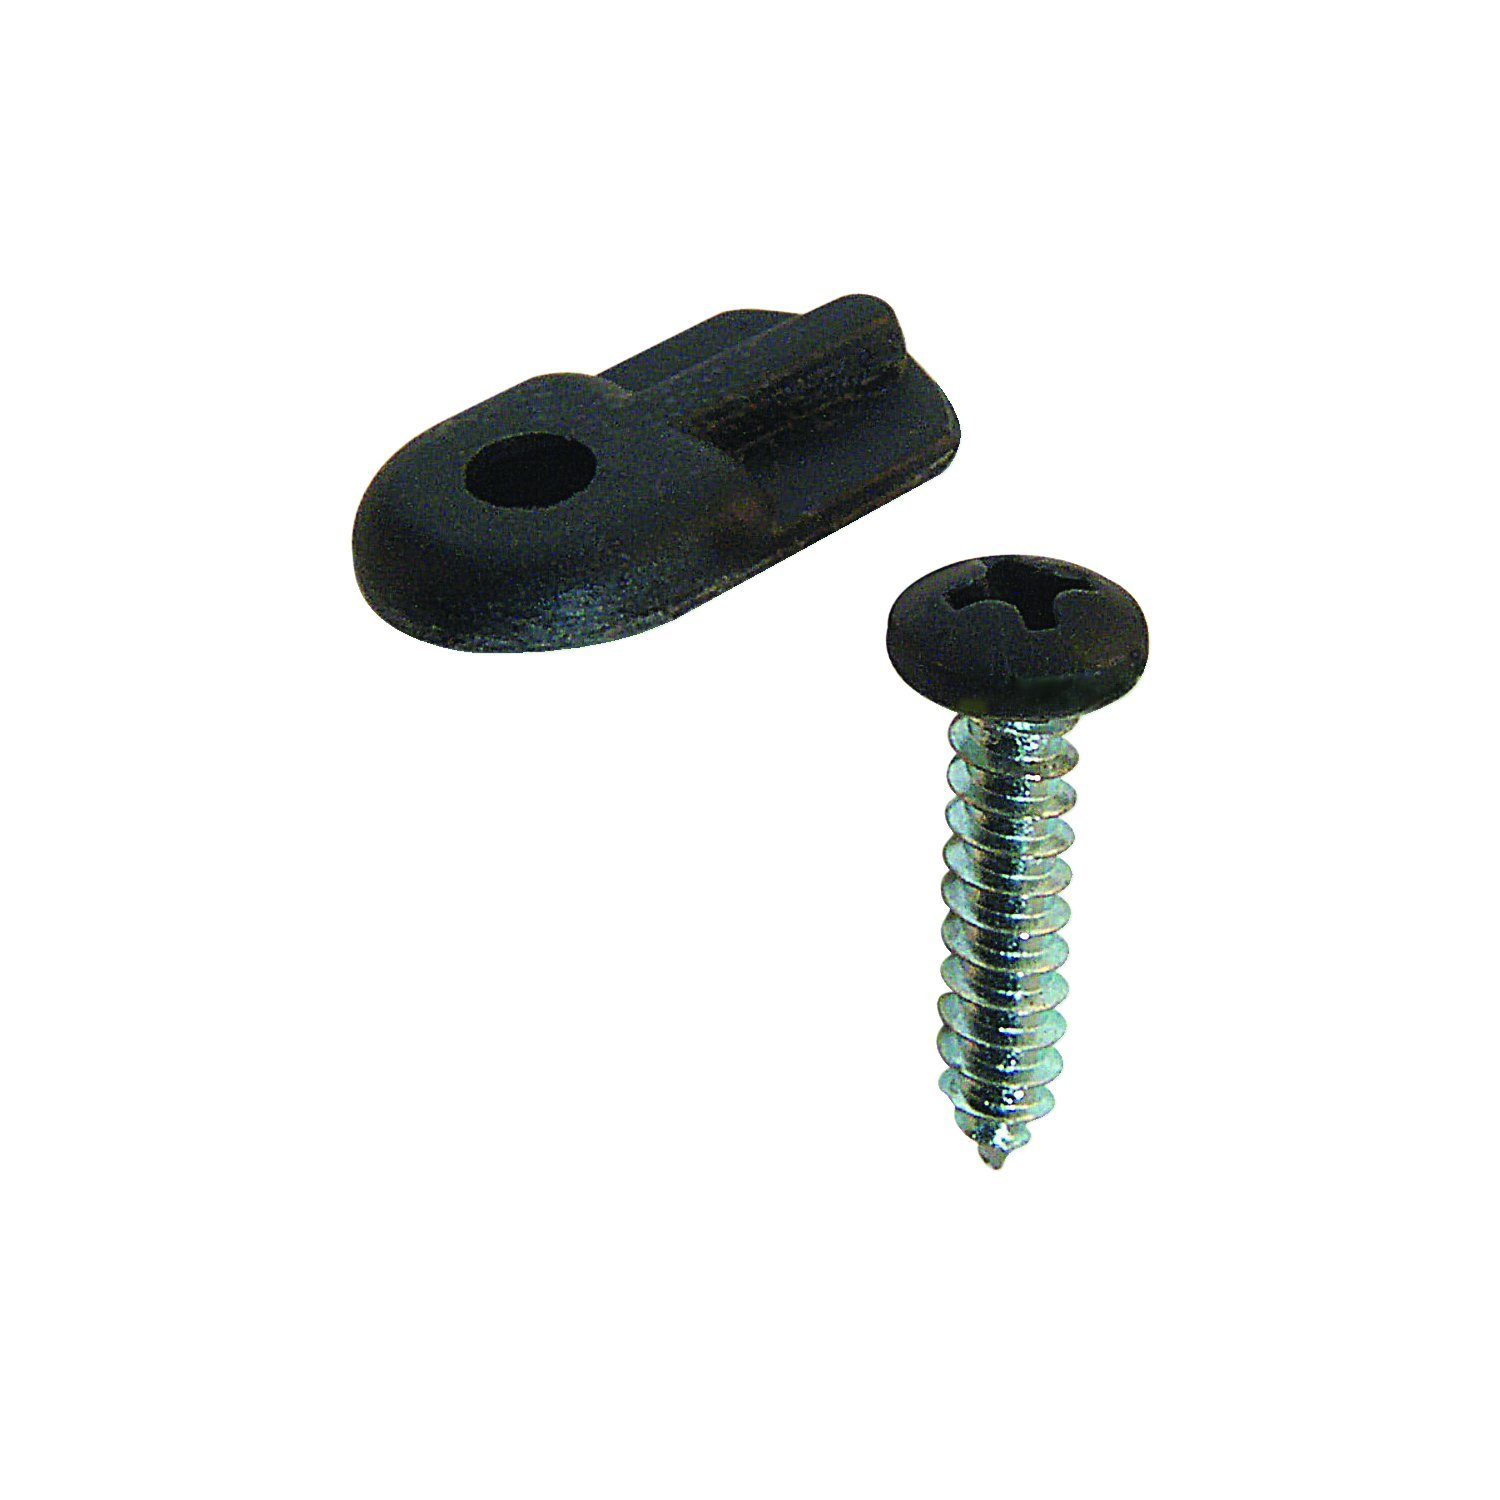 Prime-Line Products PL 7906 Flush Screen Clips with Screws (Pack of 12), Plastic Black